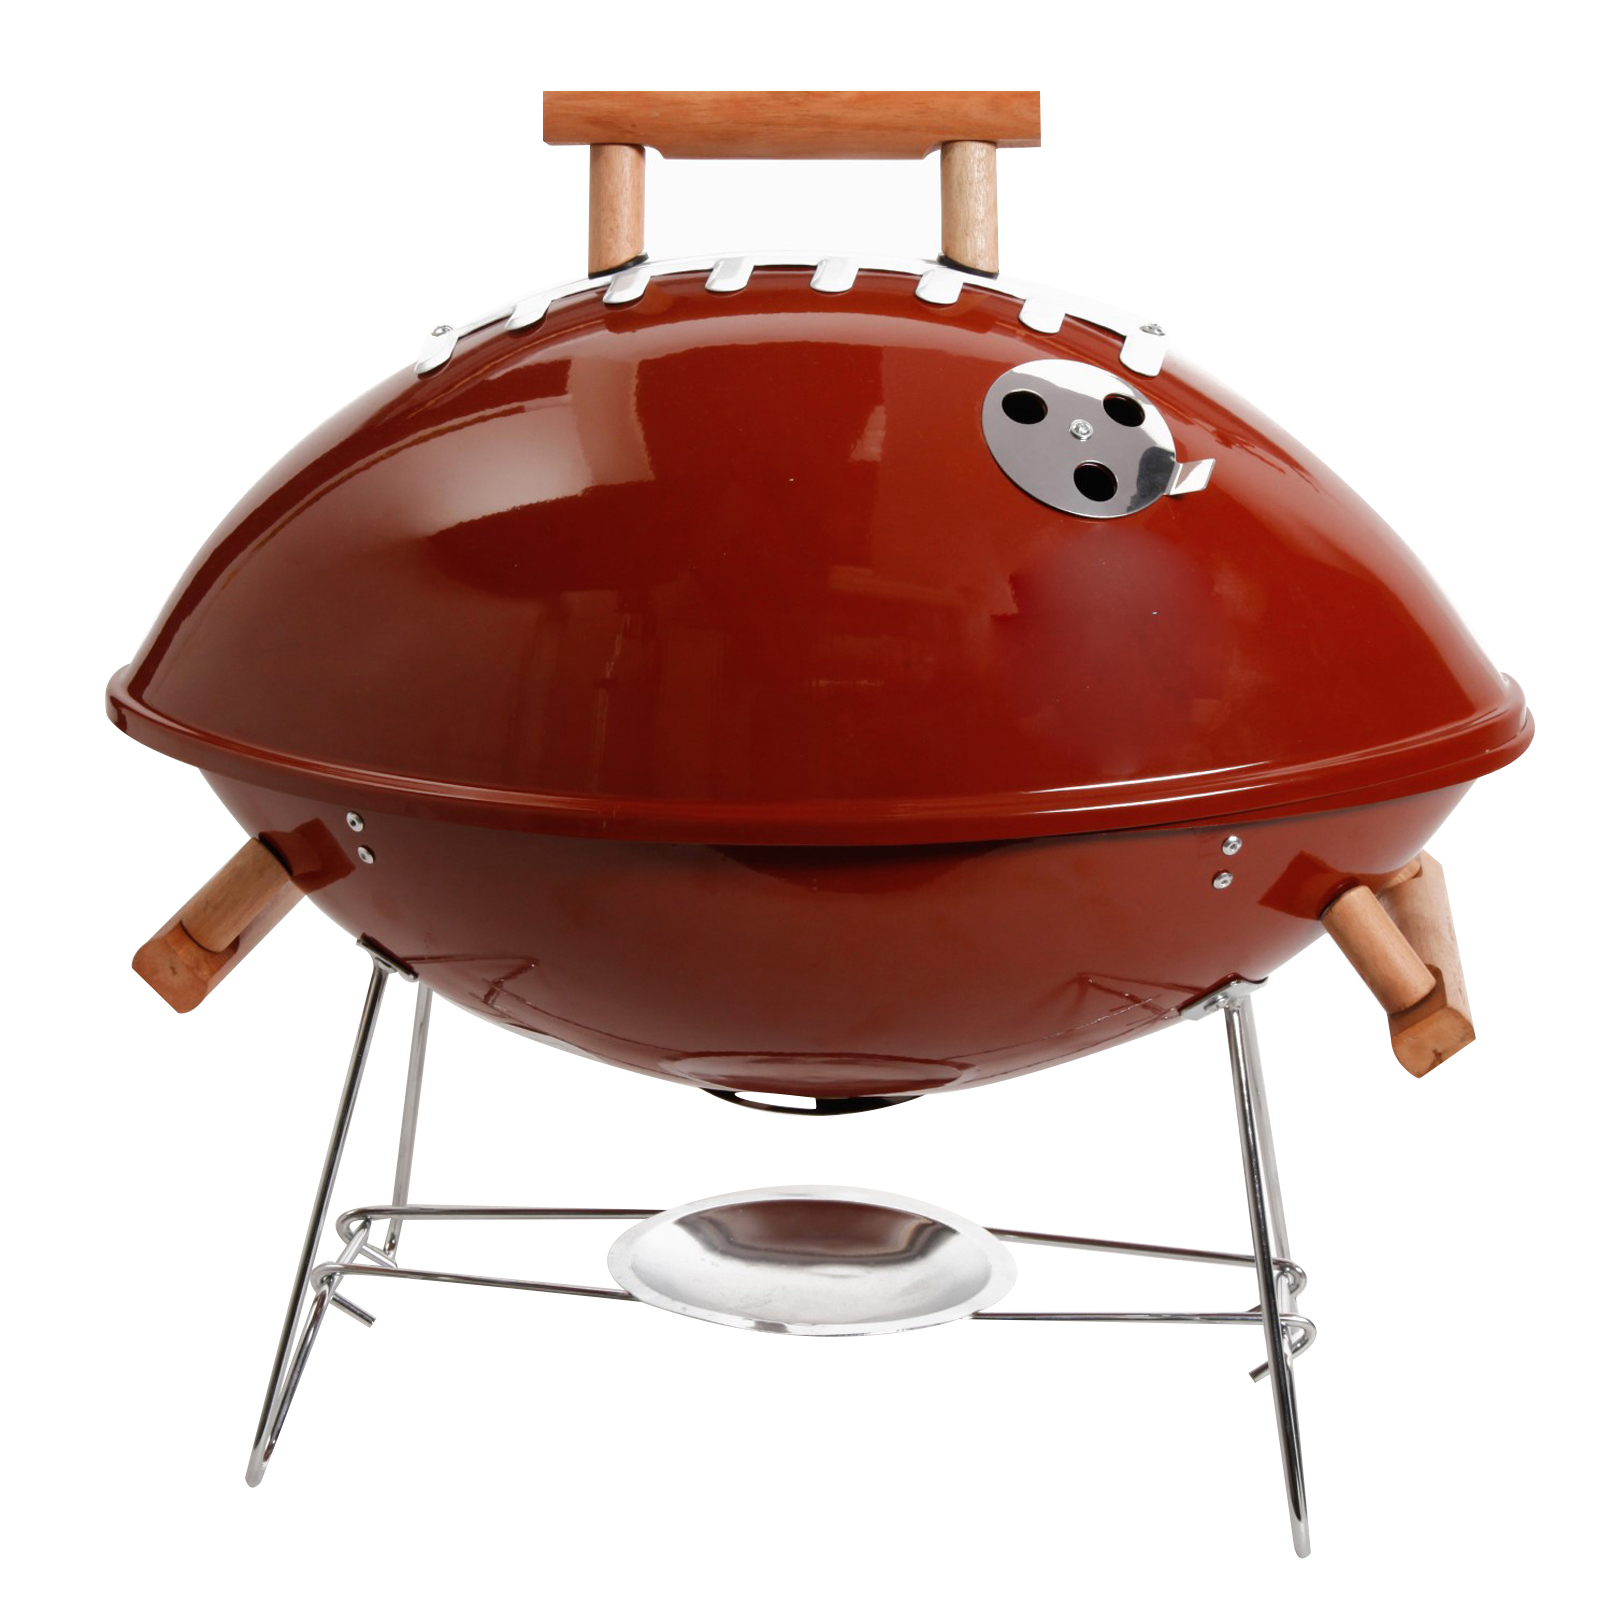 "Football BBQ 18"" Grill - Brown - Powder Coating - Wood Handle - Steel"